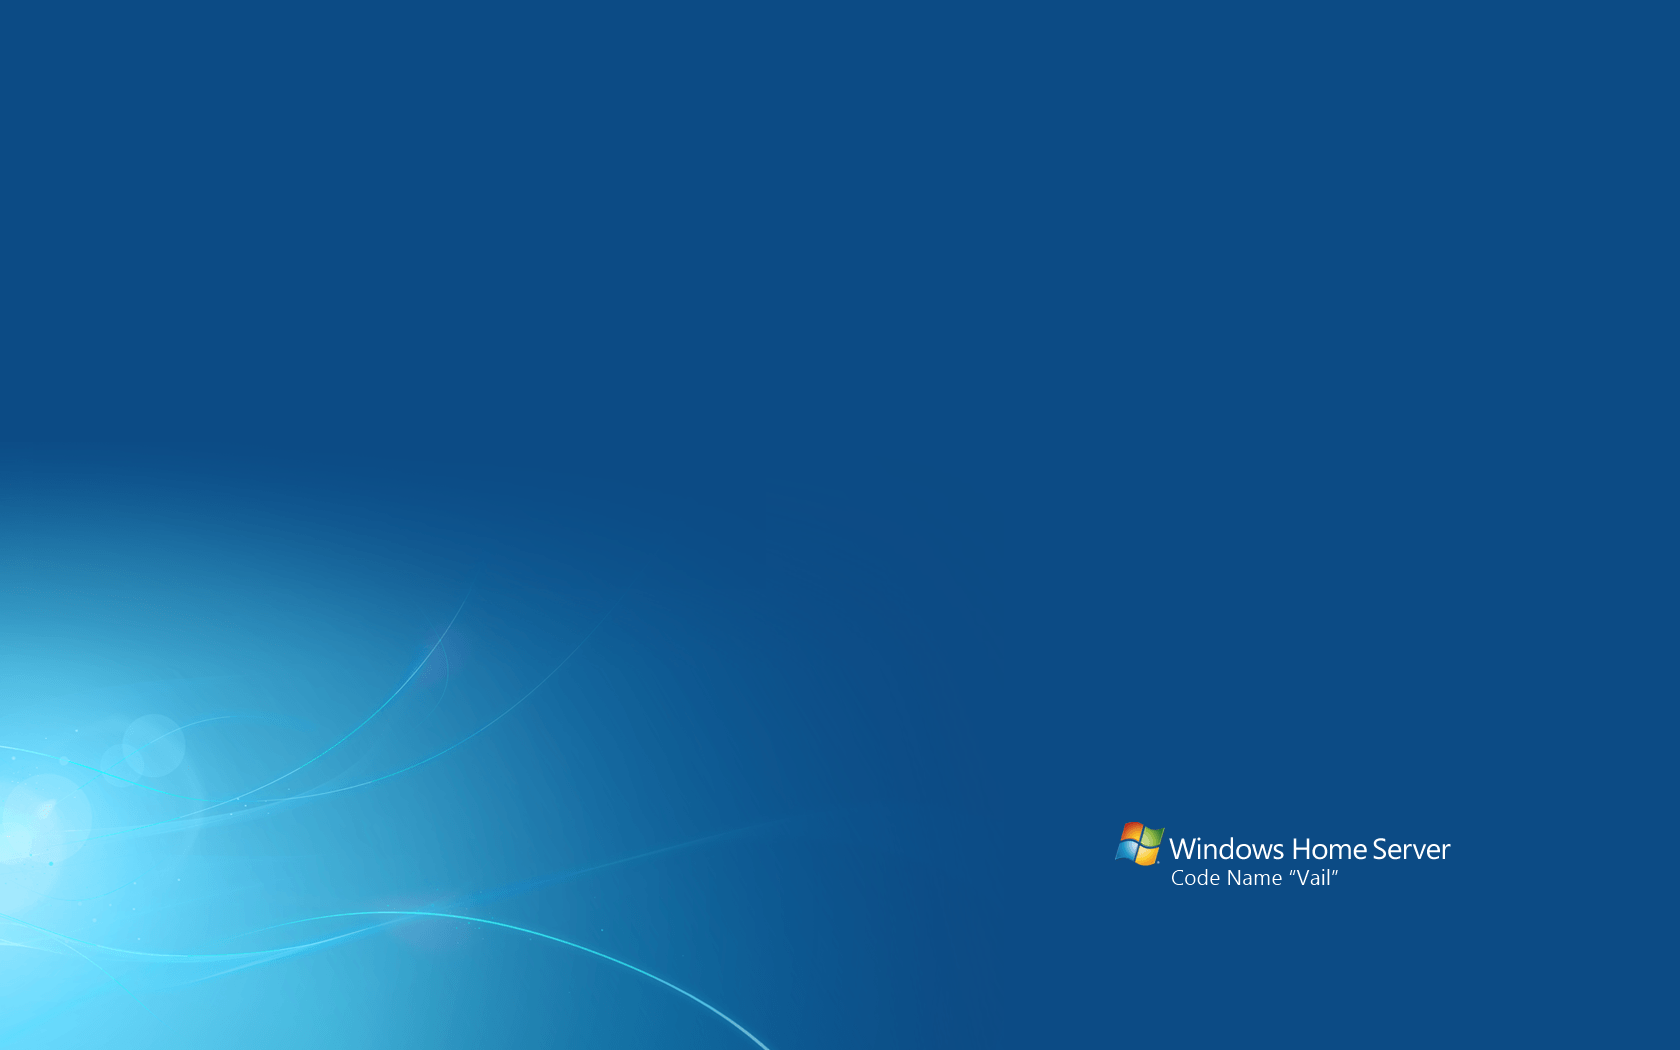 windows server wallpapers wallpaper cave